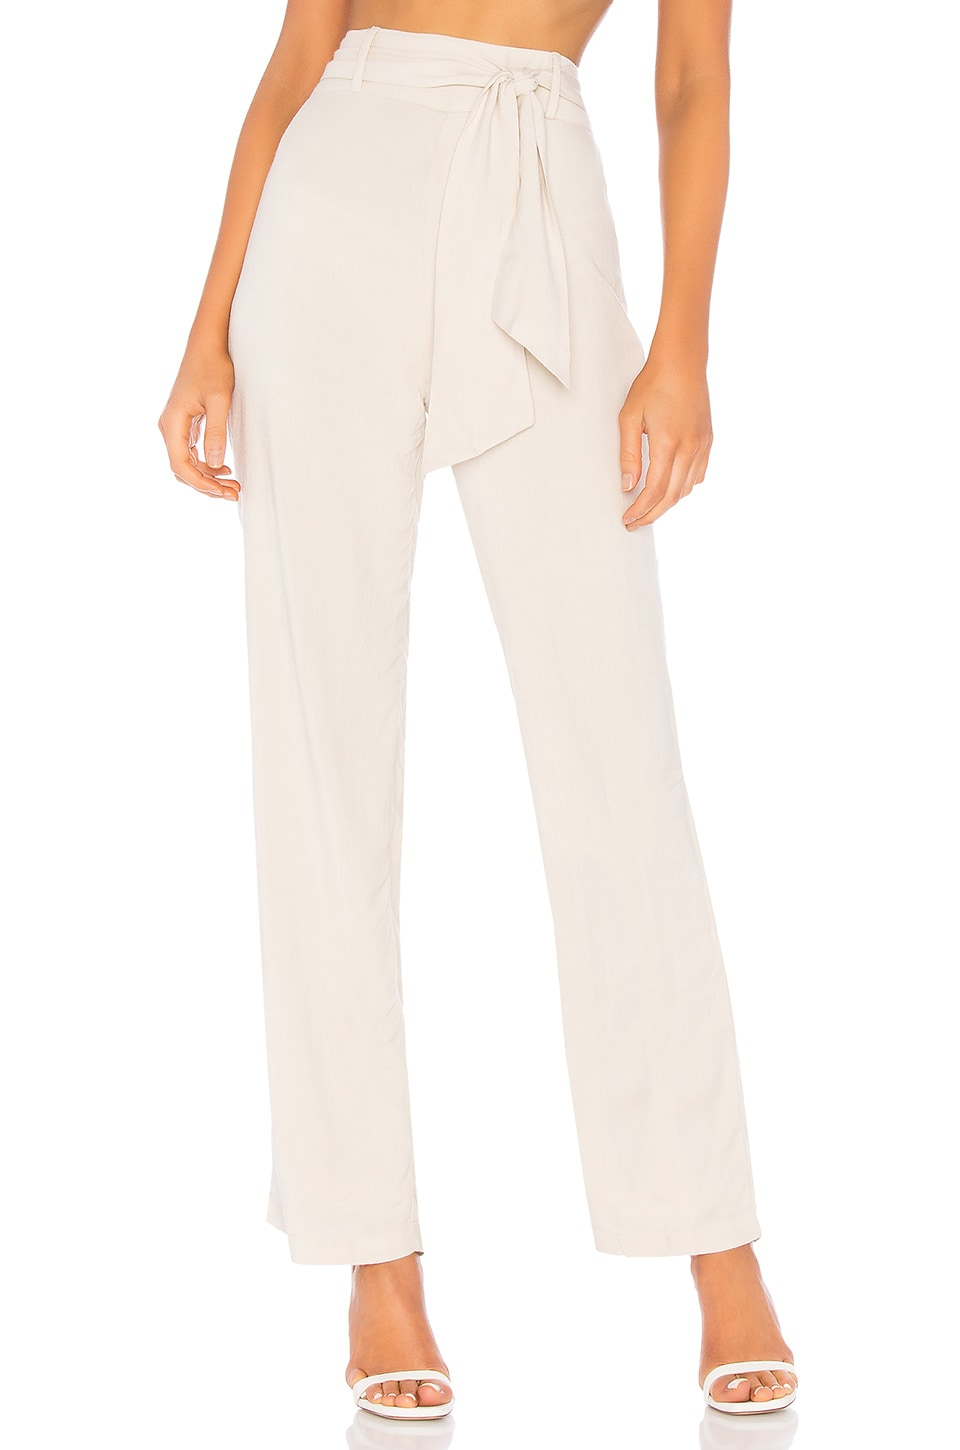 L'Academie The Porto Pant in Oatmeal